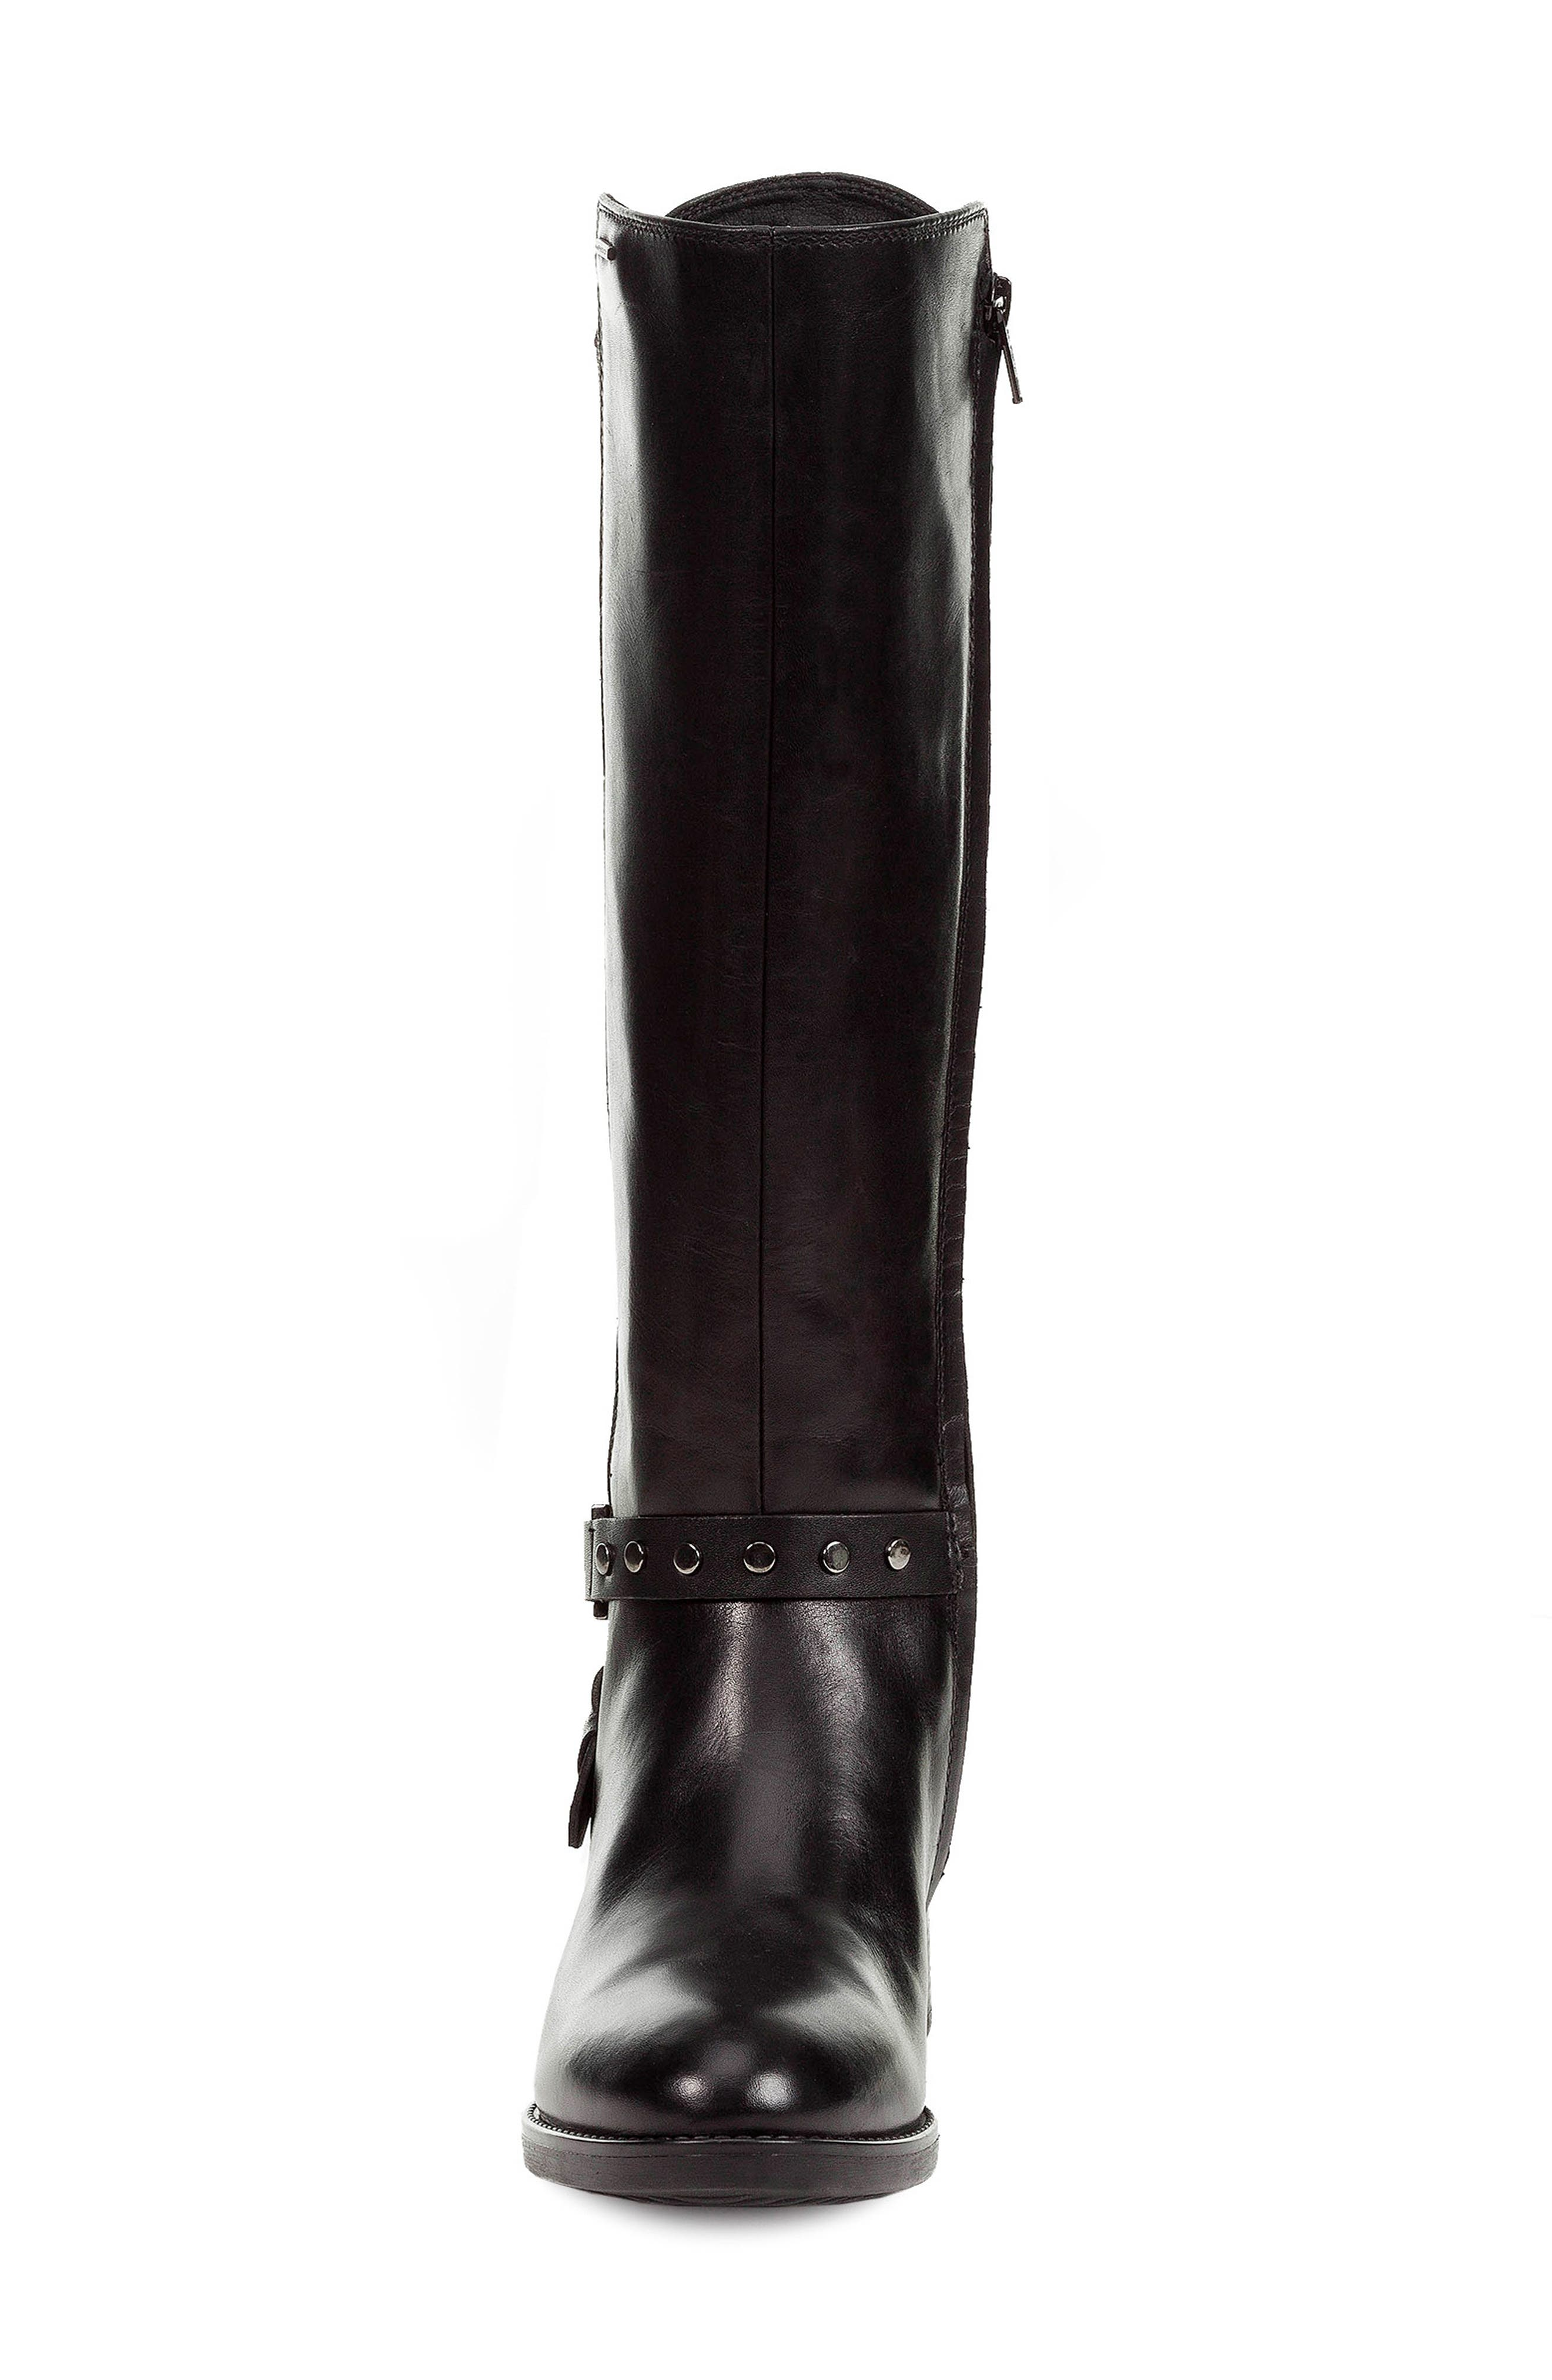 Felicity ABX Waterproof Knee High Riding Boot,                             Alternate thumbnail 4, color,                             BLACK LEATHER